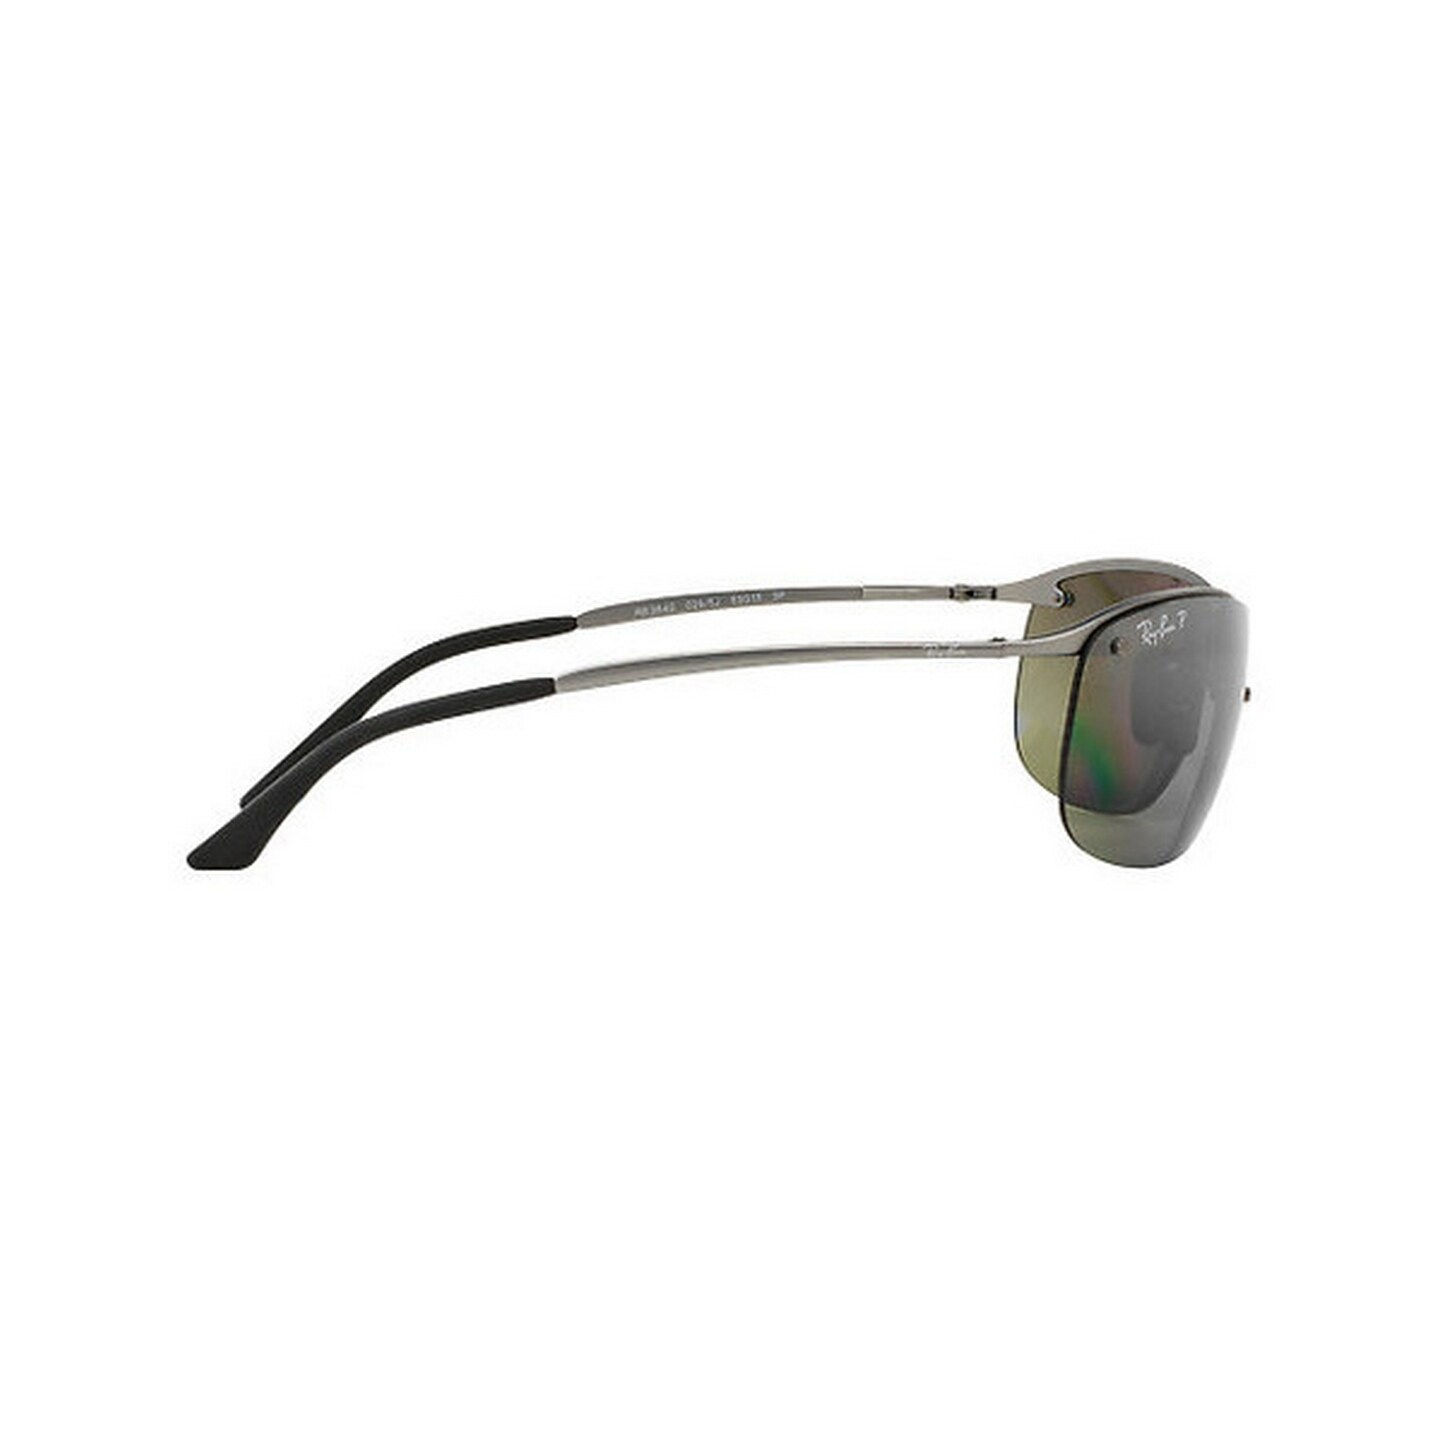 ea7dd4f8cf Shop Ray-Ban Men s RB3542 029 5J 63 Rectangle Metal Plastic Gunmetal Grey  Sunglasses - Free Shipping Today - Overstock - 14602339